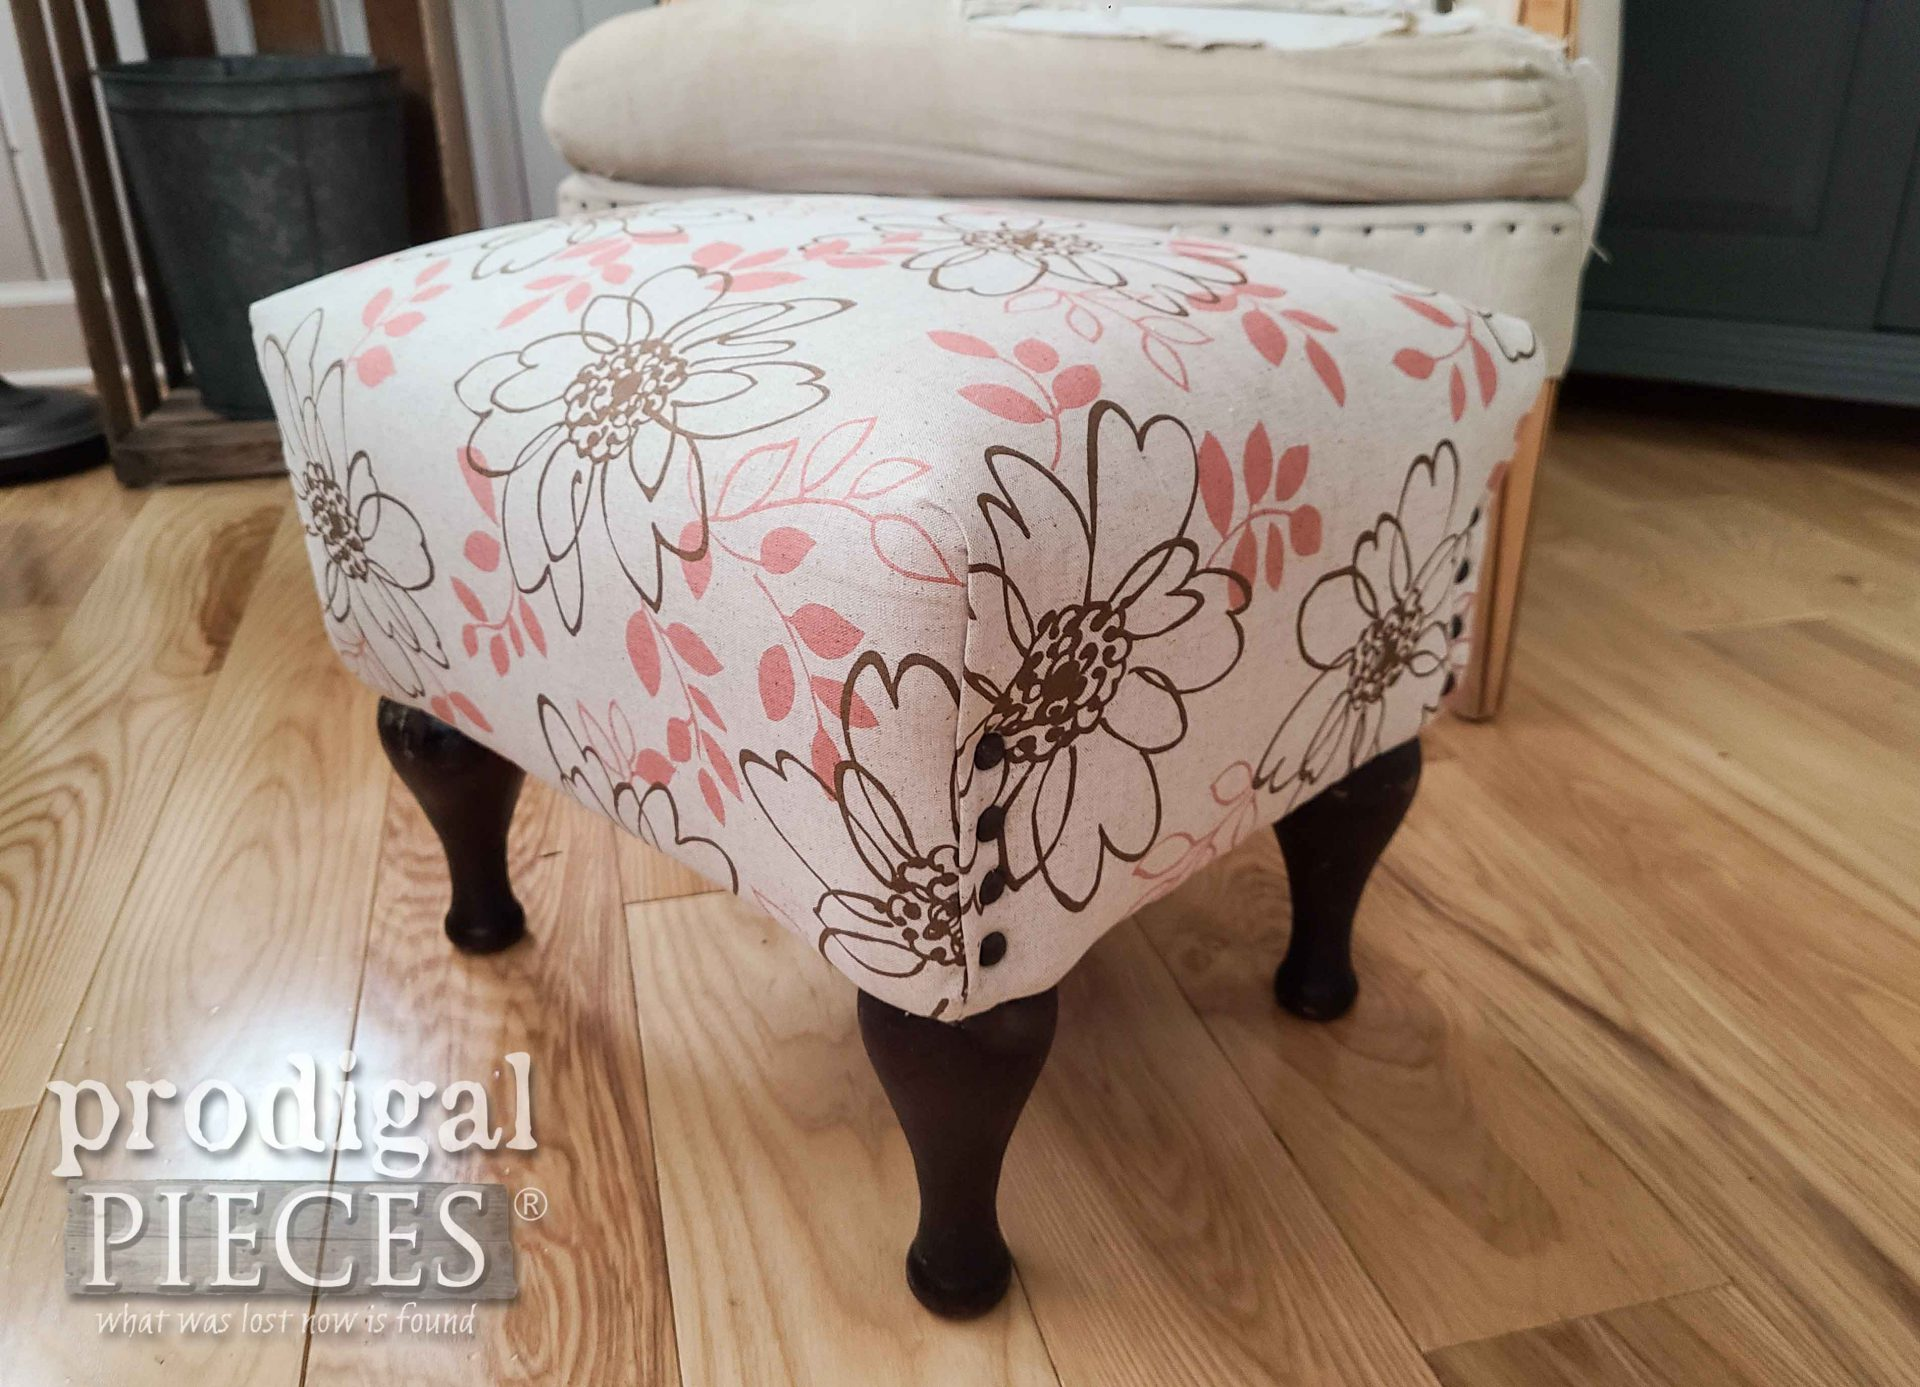 Nailhead Linen Footstool with Floral Design by Larissa of Prodigal Pieces | prodigalpieces.com #prodigalpieces #furniture #vintage #home #homedecor